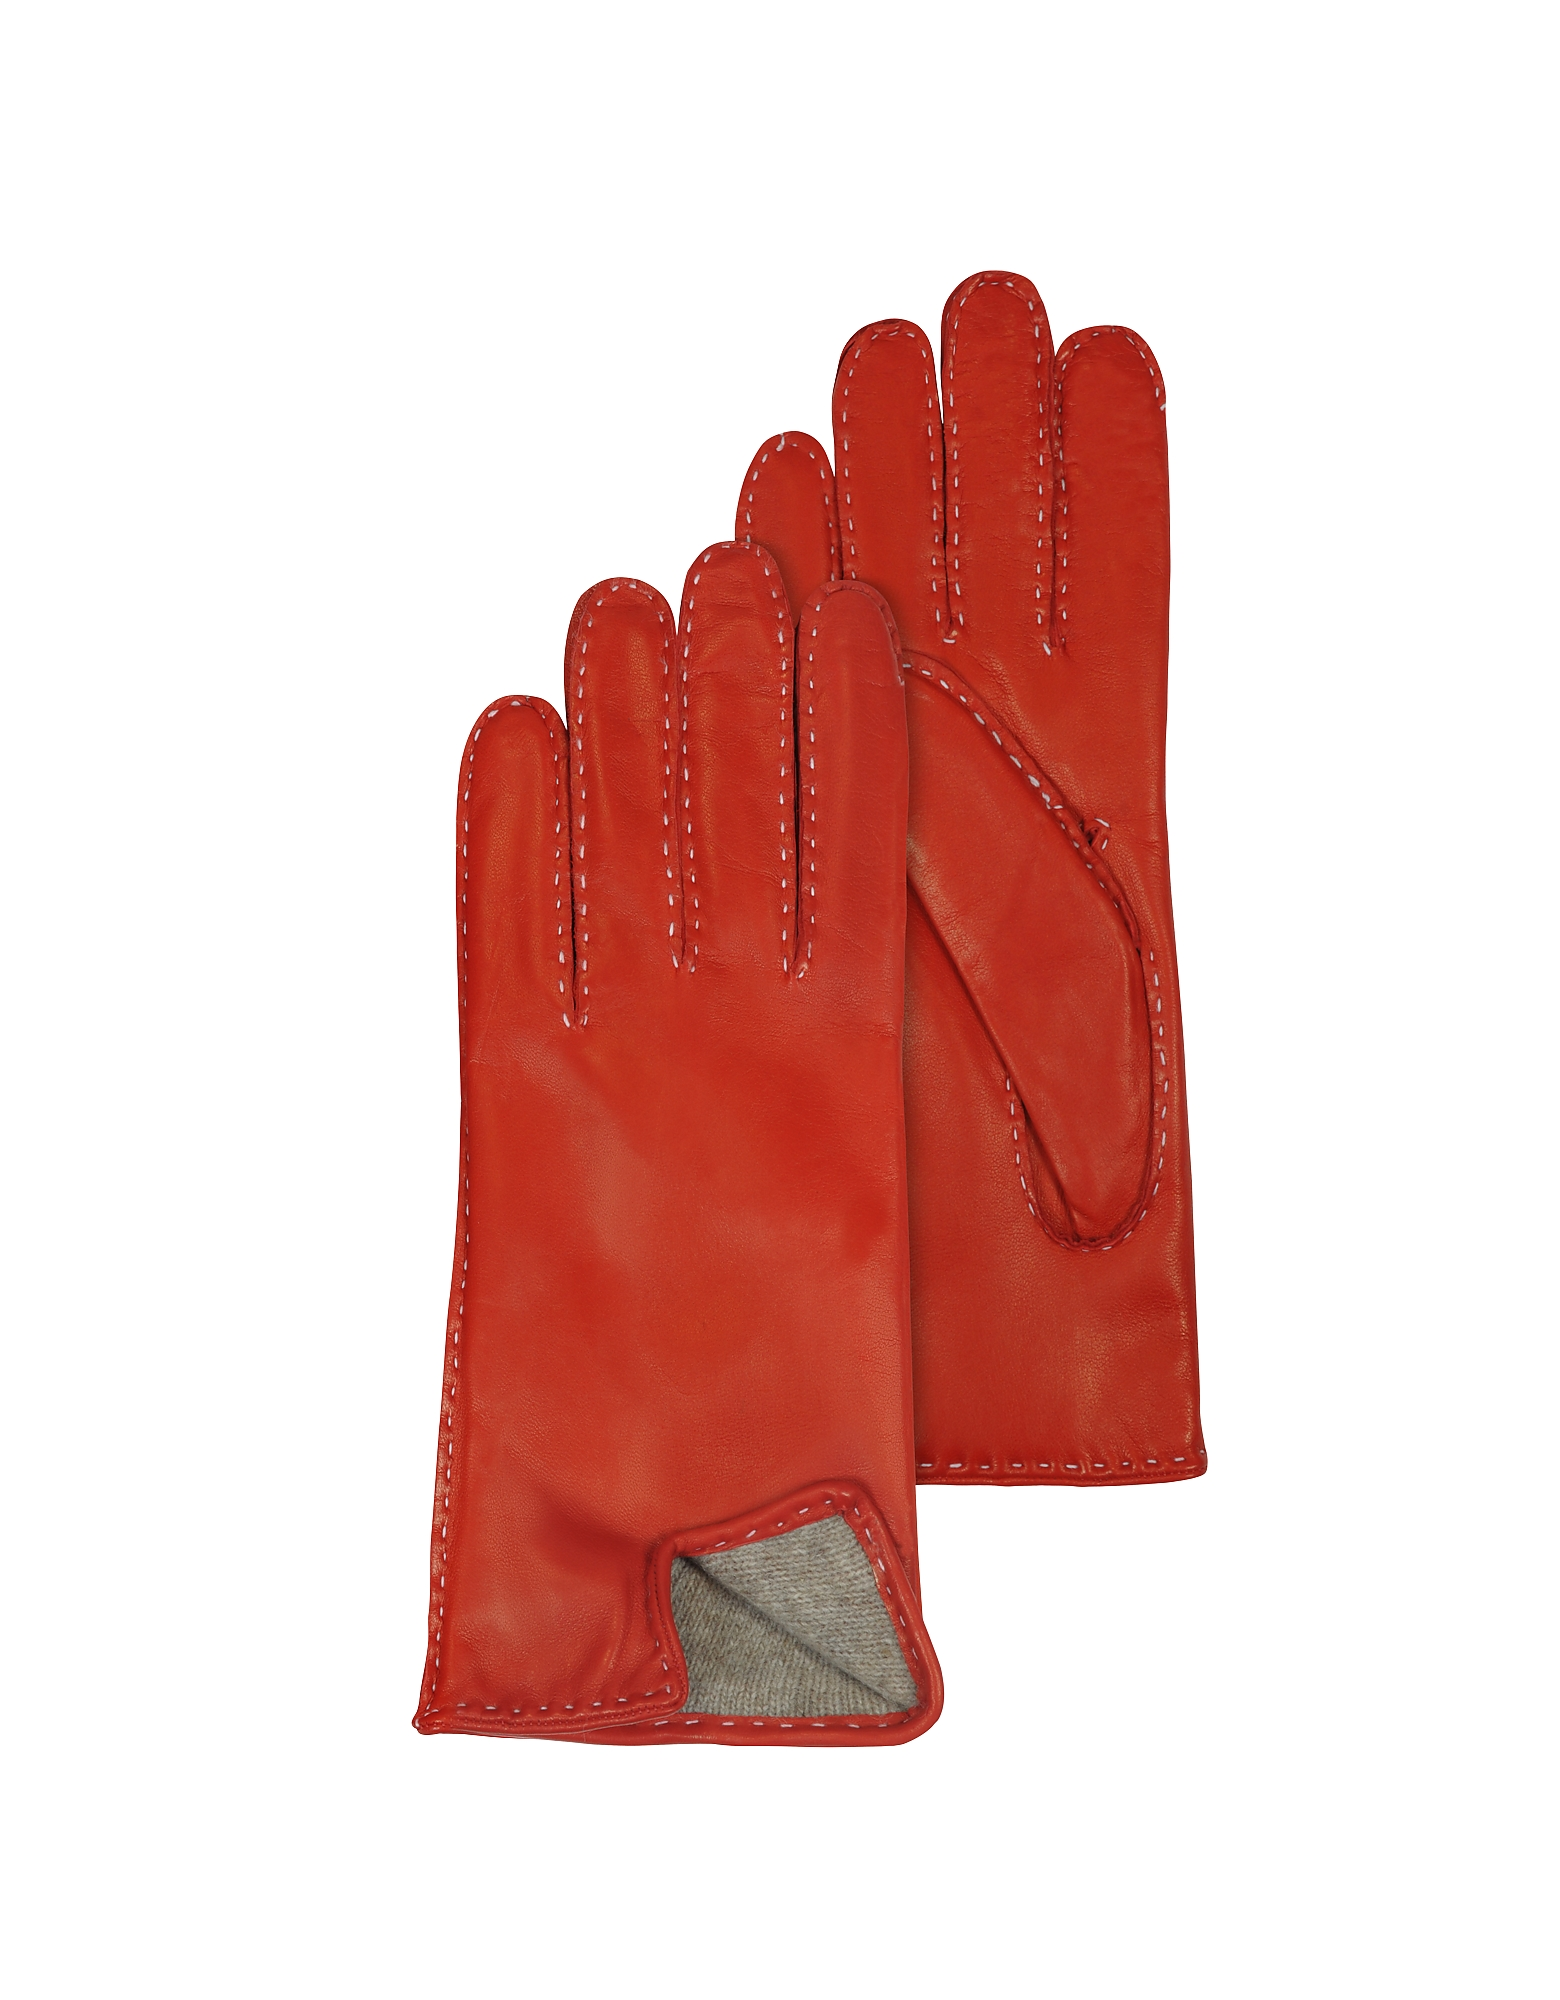 Women's Stitched Cashmere Lined Red Italian Leather Gloves от Forzieri.com INT